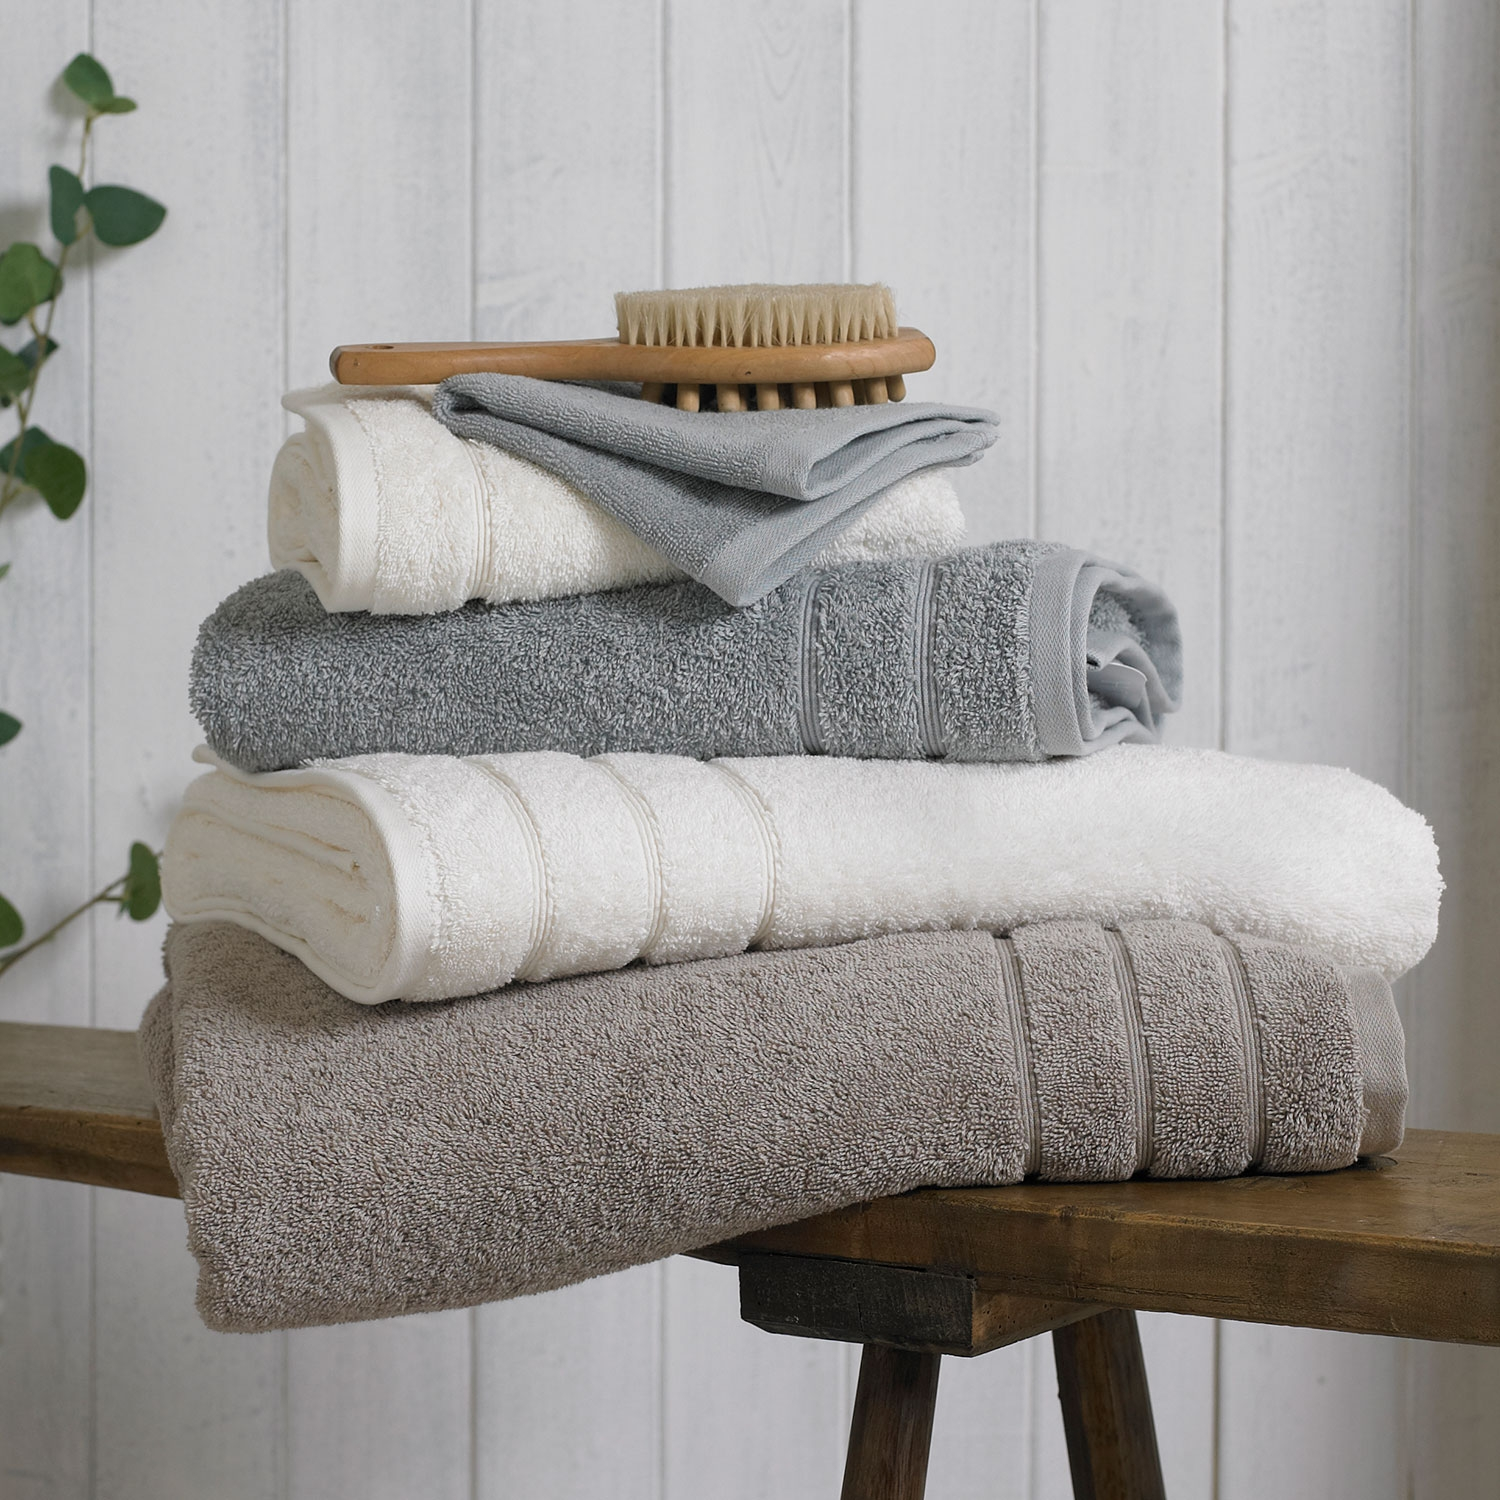 PRESTON SPA TOWELS